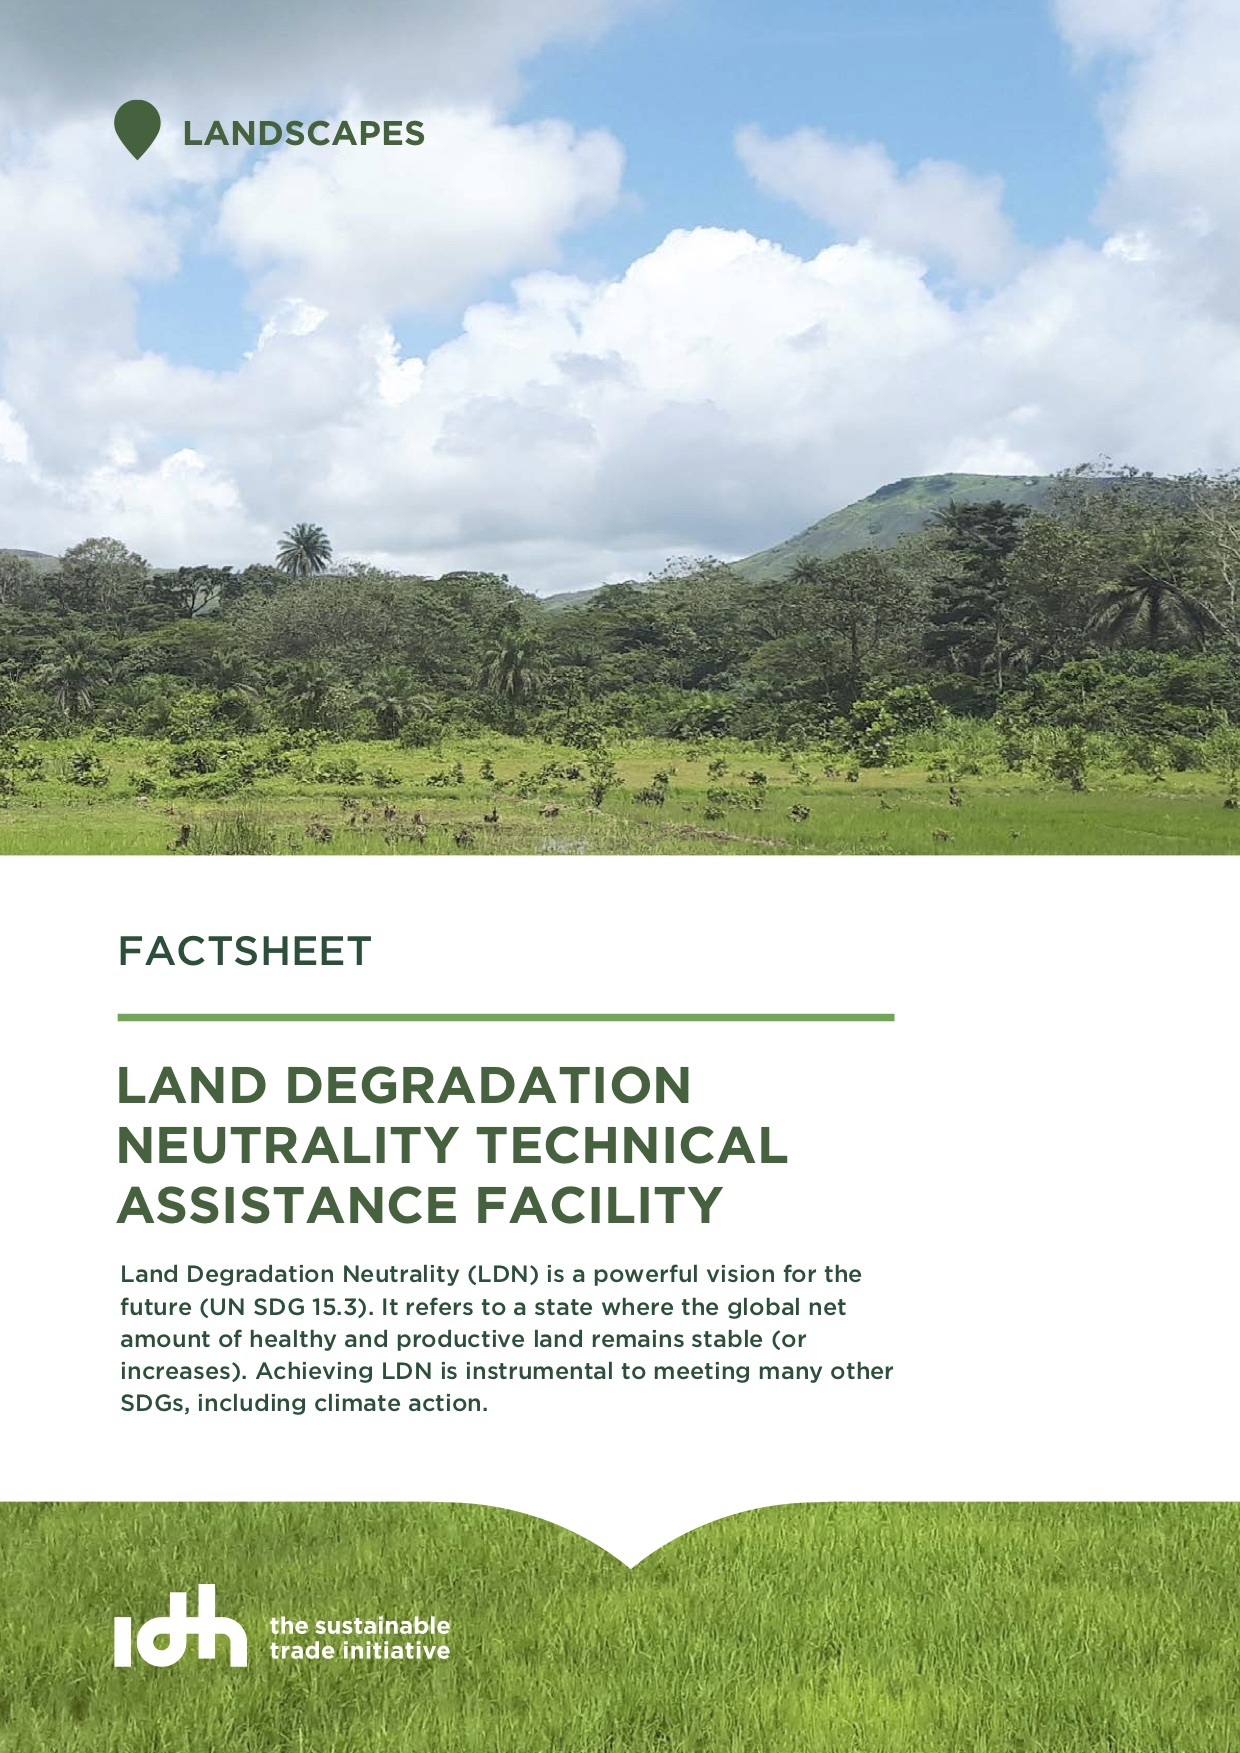 Land Degradation Neutrality Technical Assistance Facility